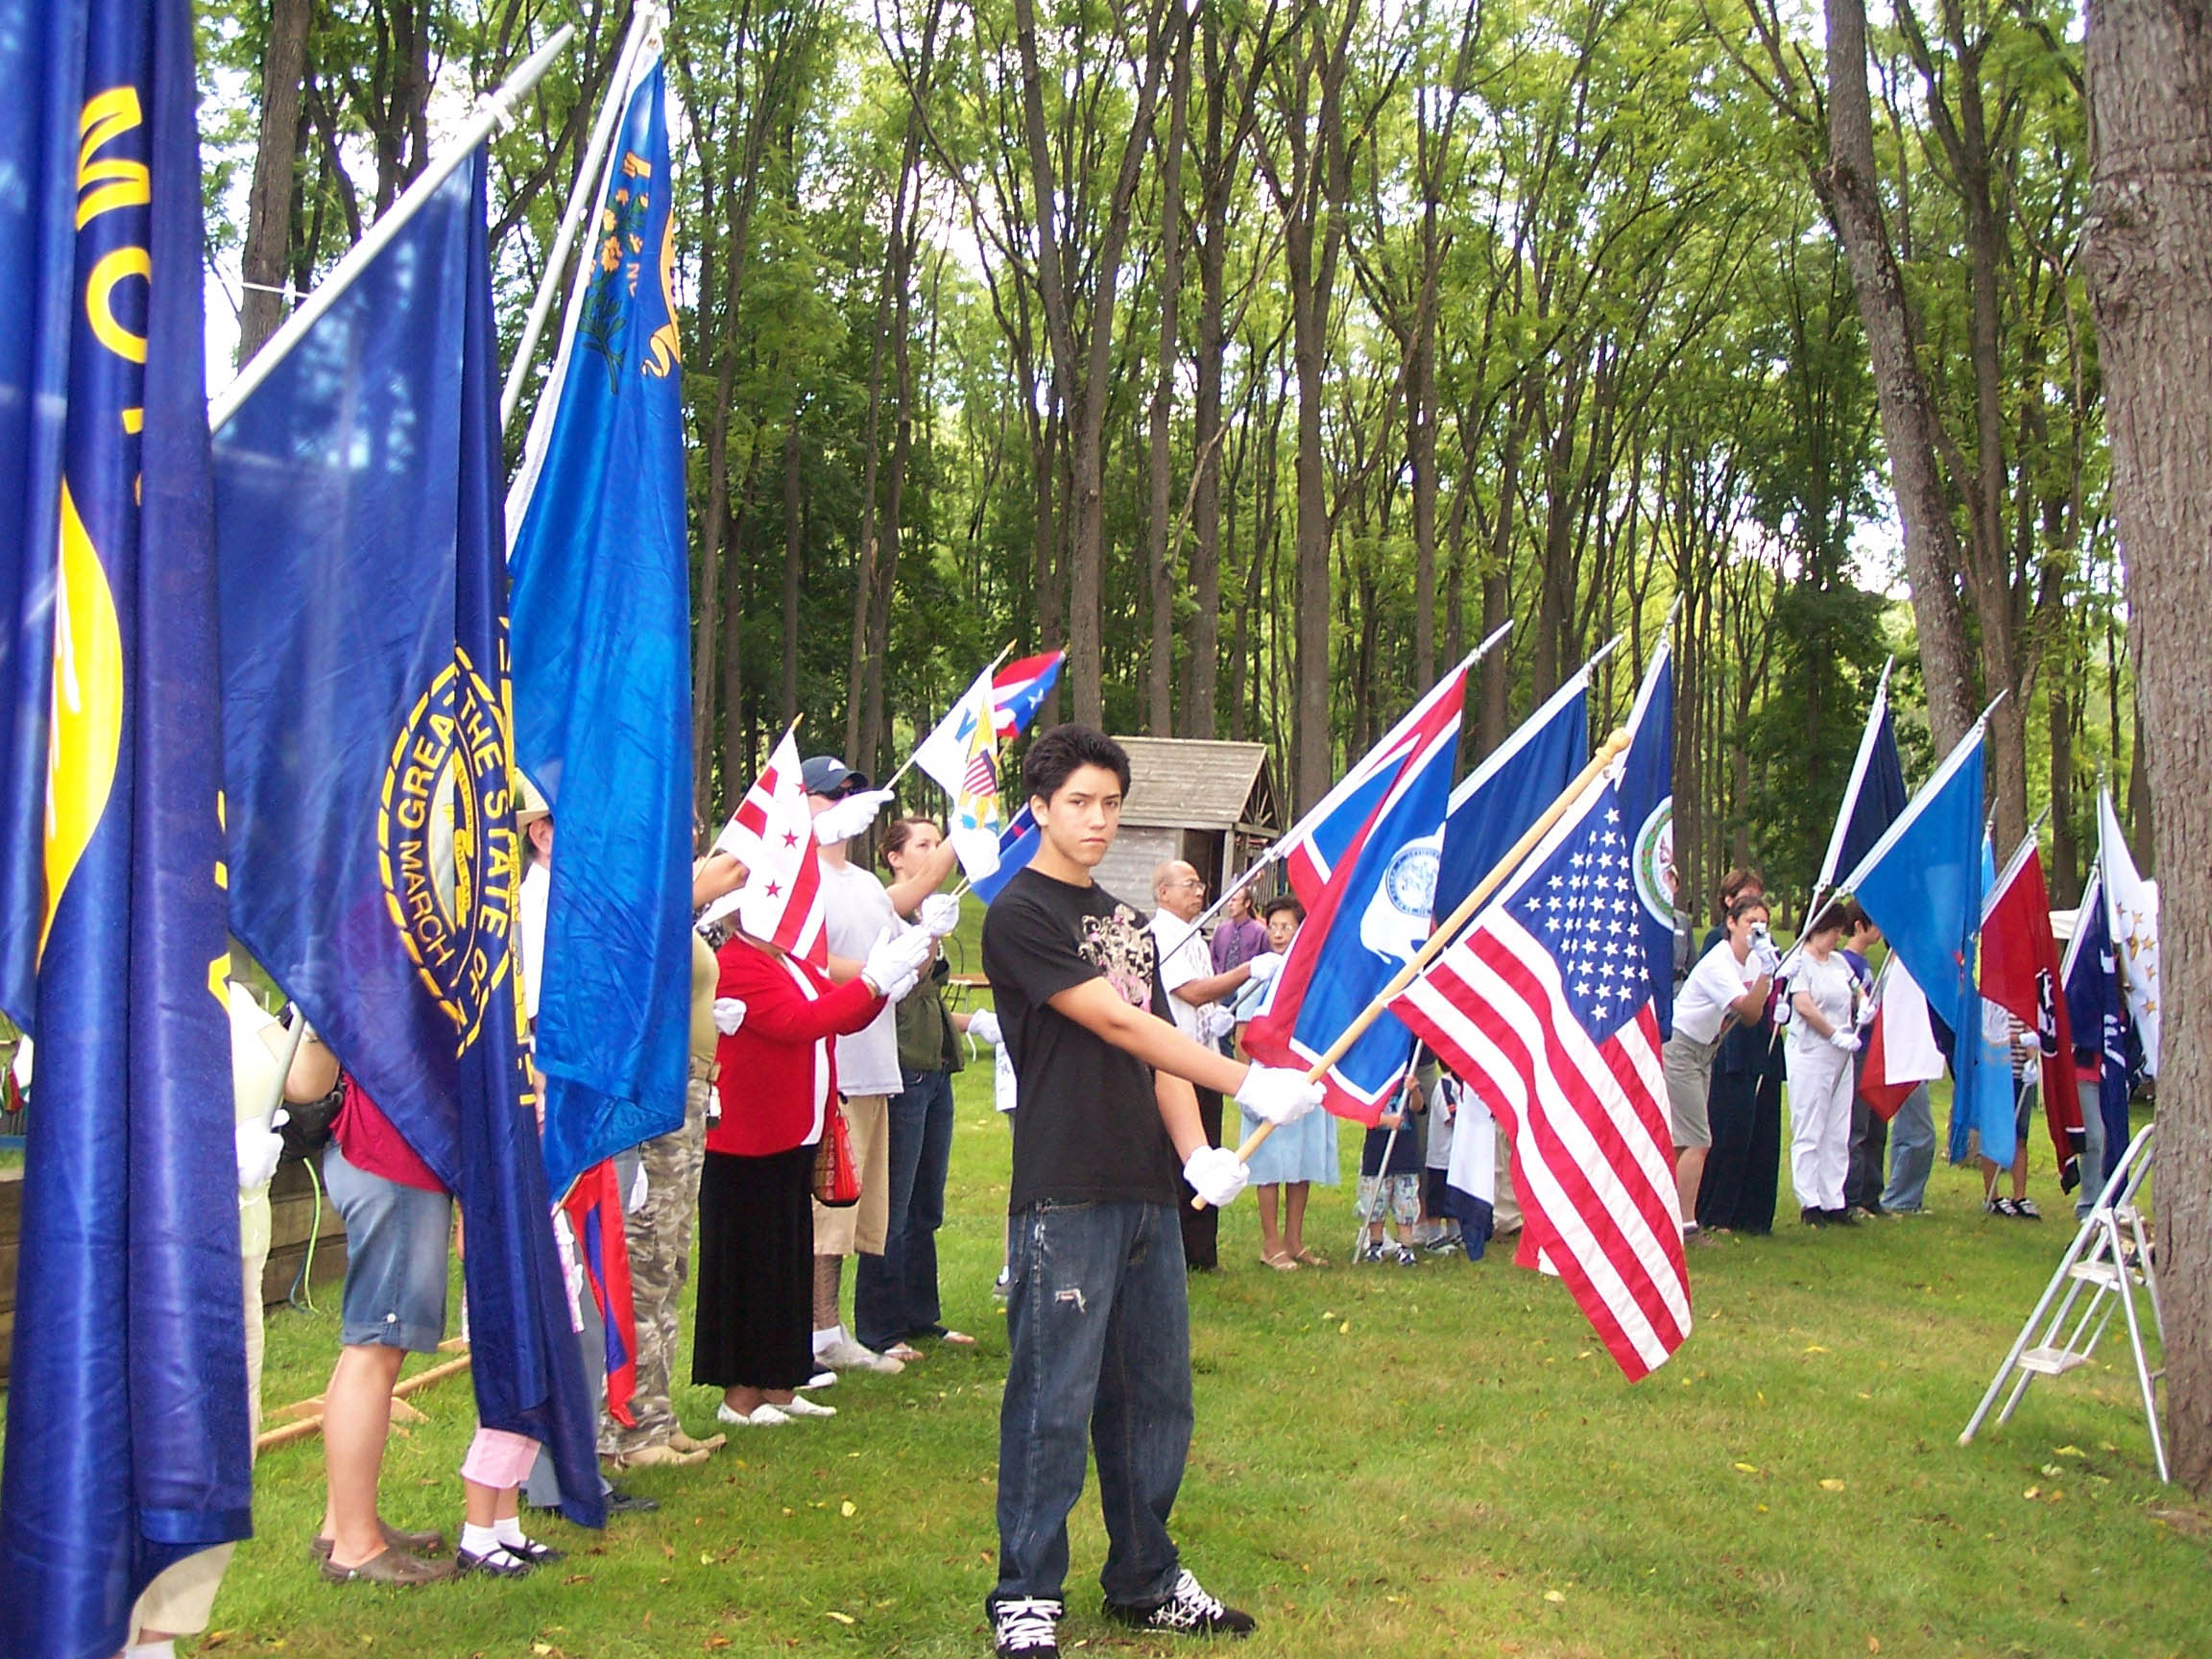 Participants in the United States Flag Ceremony.